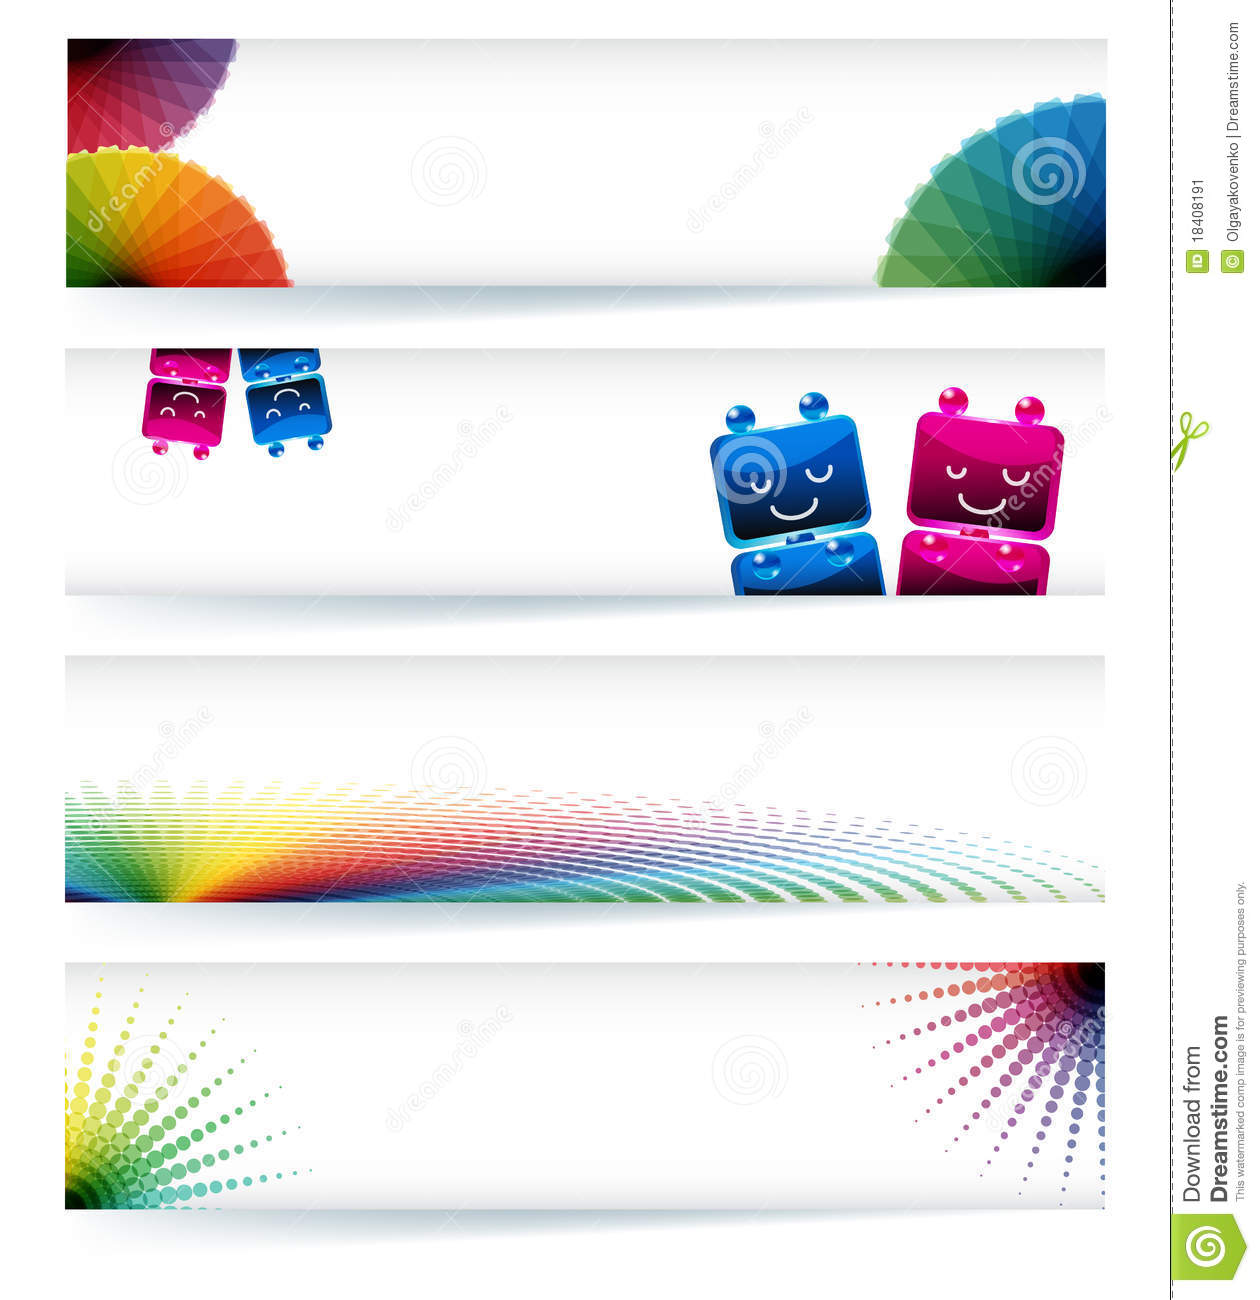 More similar stock images of ` Multicolor gamut banner design `